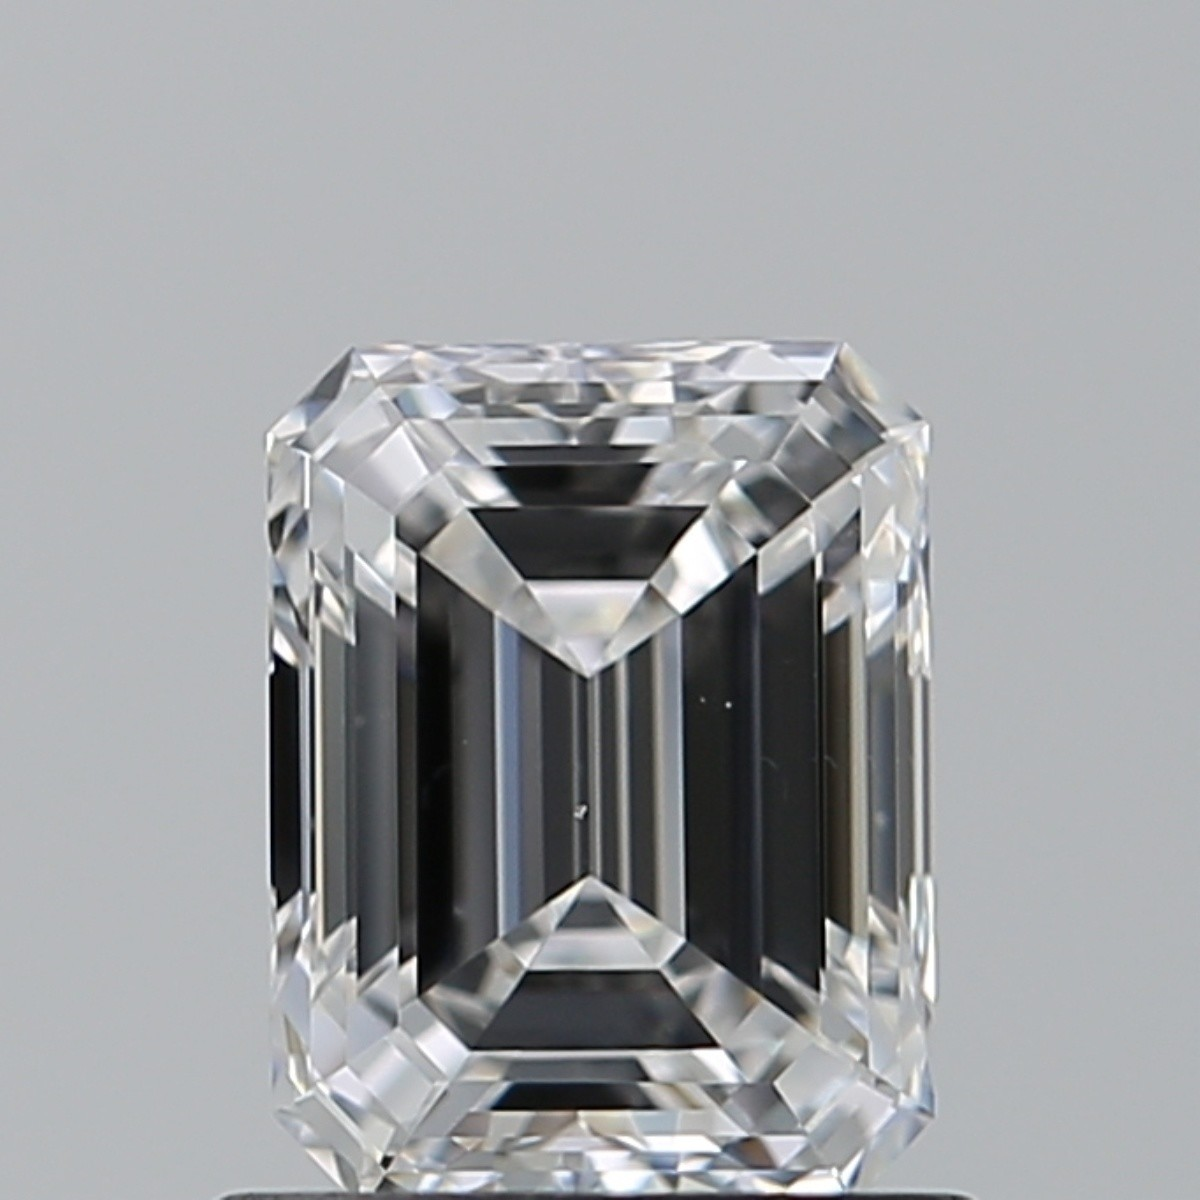 1.01 Carat Emerald Diamond (D/VS2)